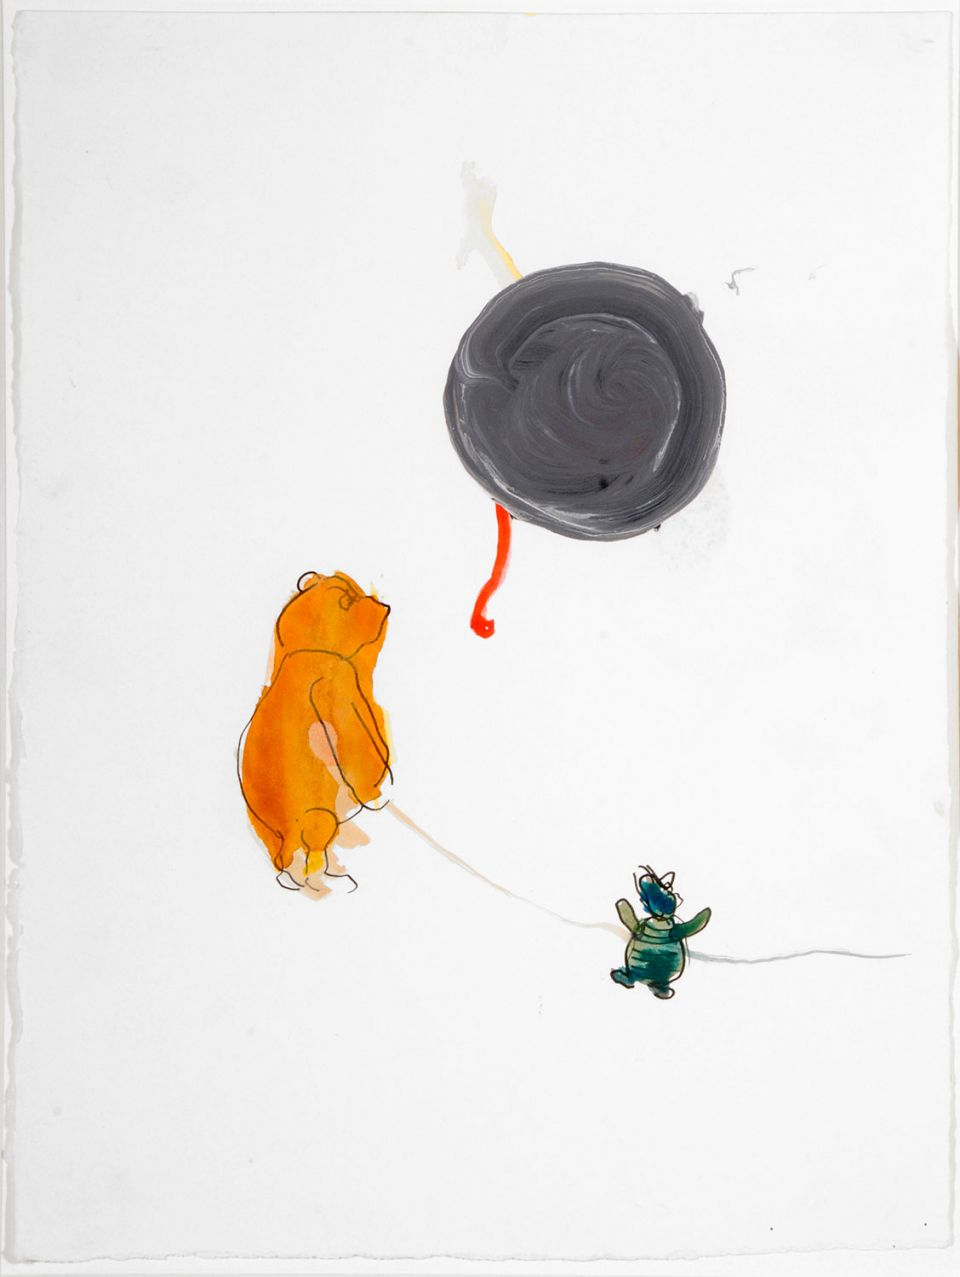 Lucia Nogueira Untitled 1989-92 (pooh)